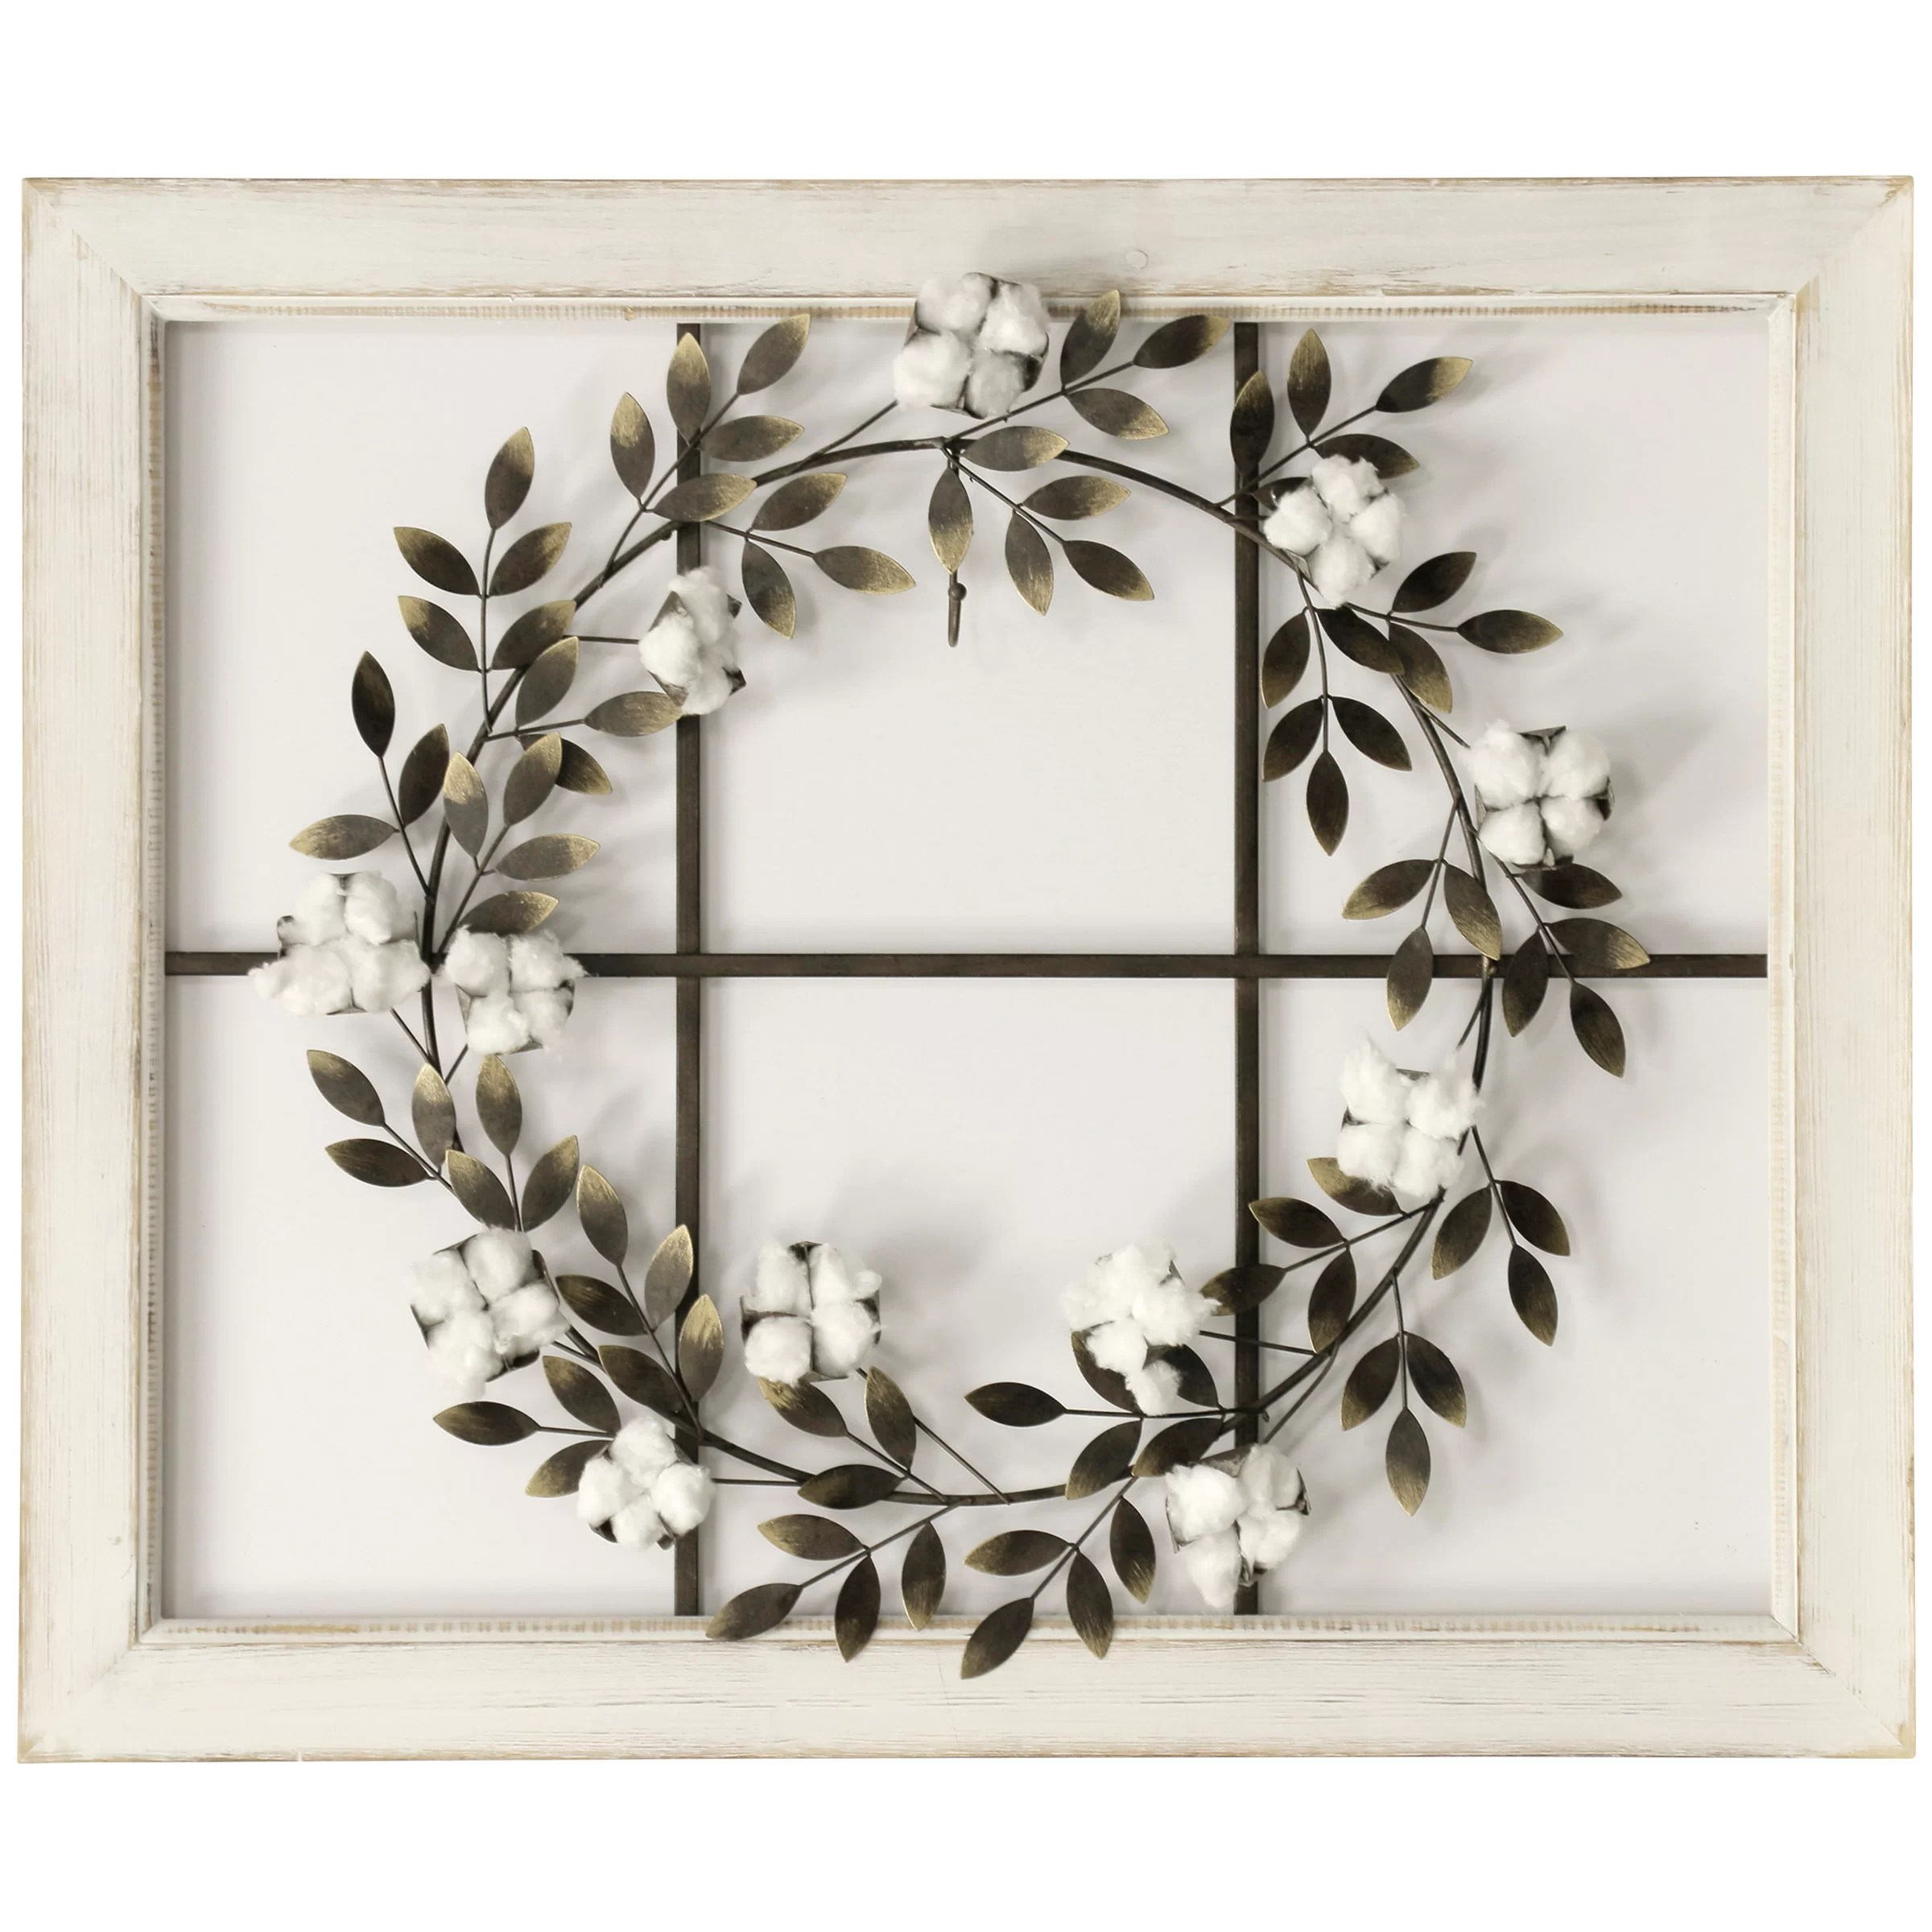 Floral Wreath Wood Framed Wall Decor Reviews Joss Main